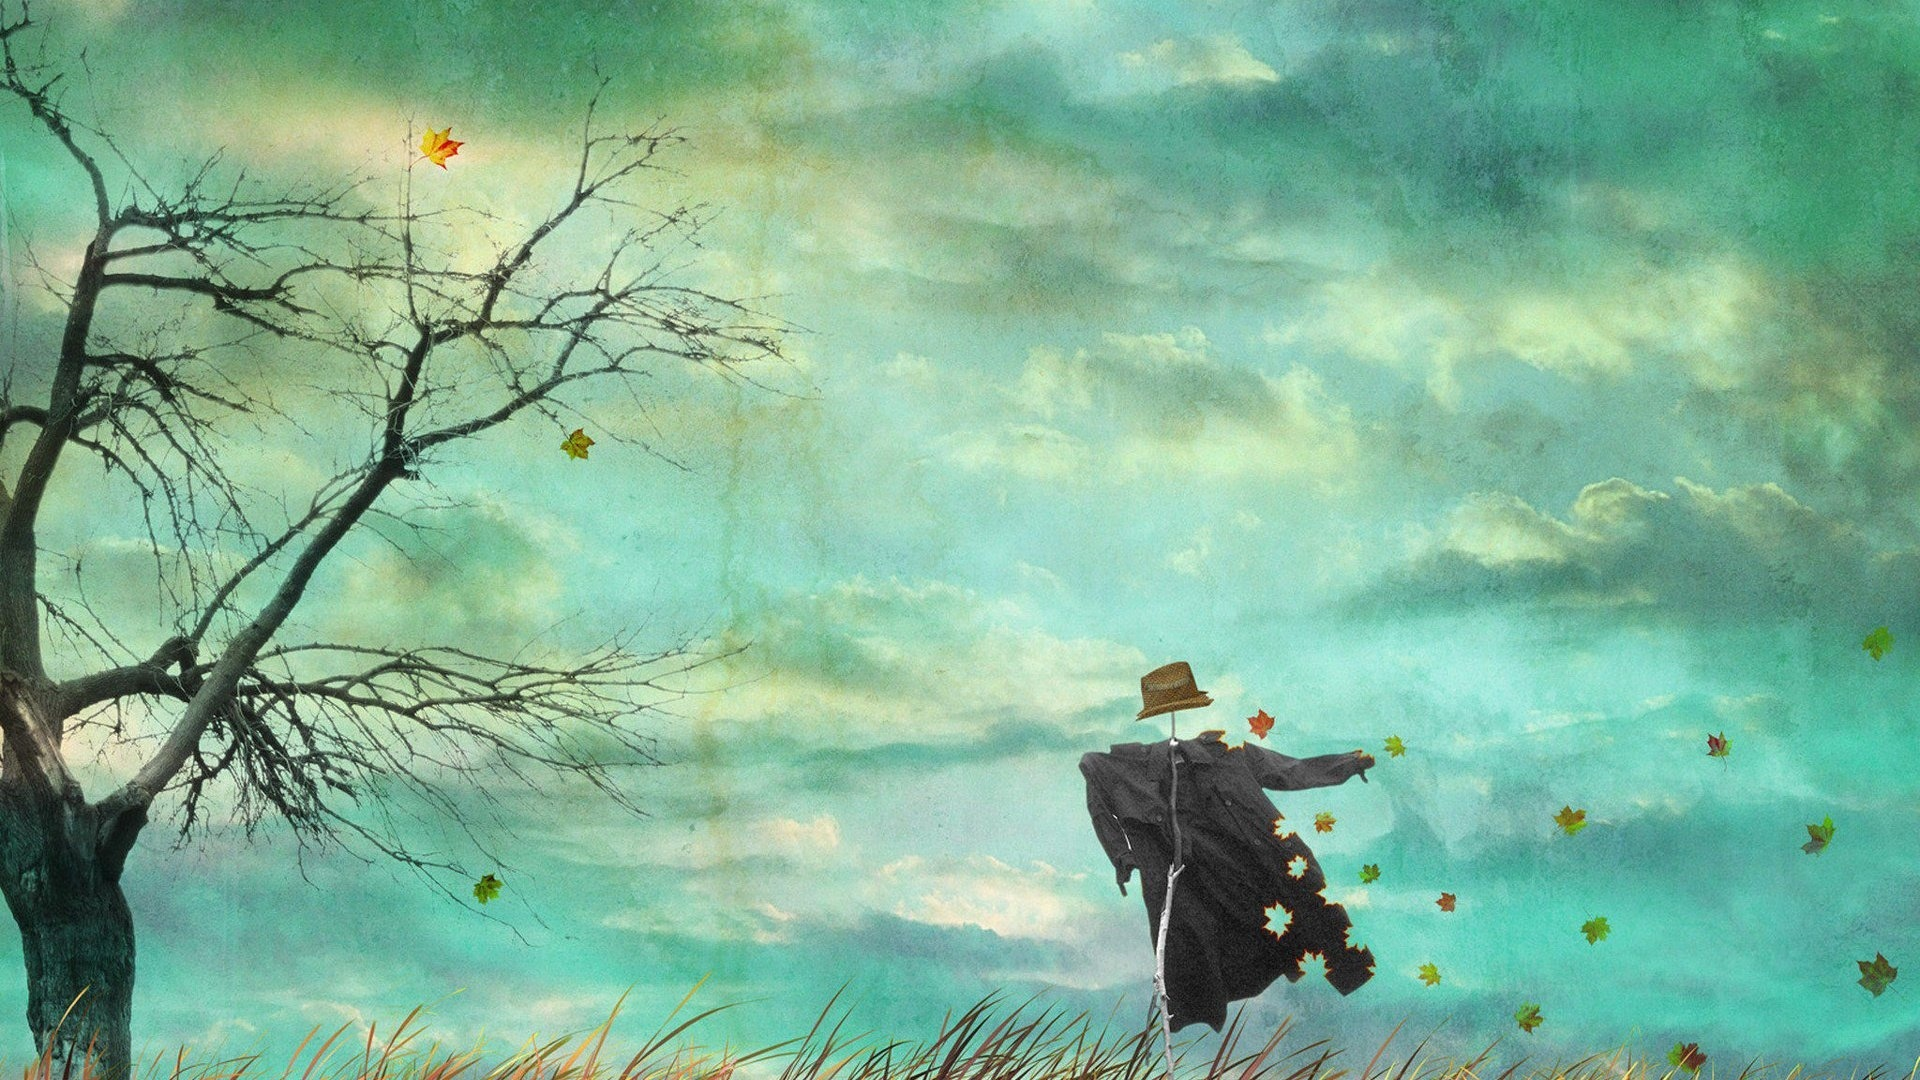 Loneliness And Wind wallpaper for desktop